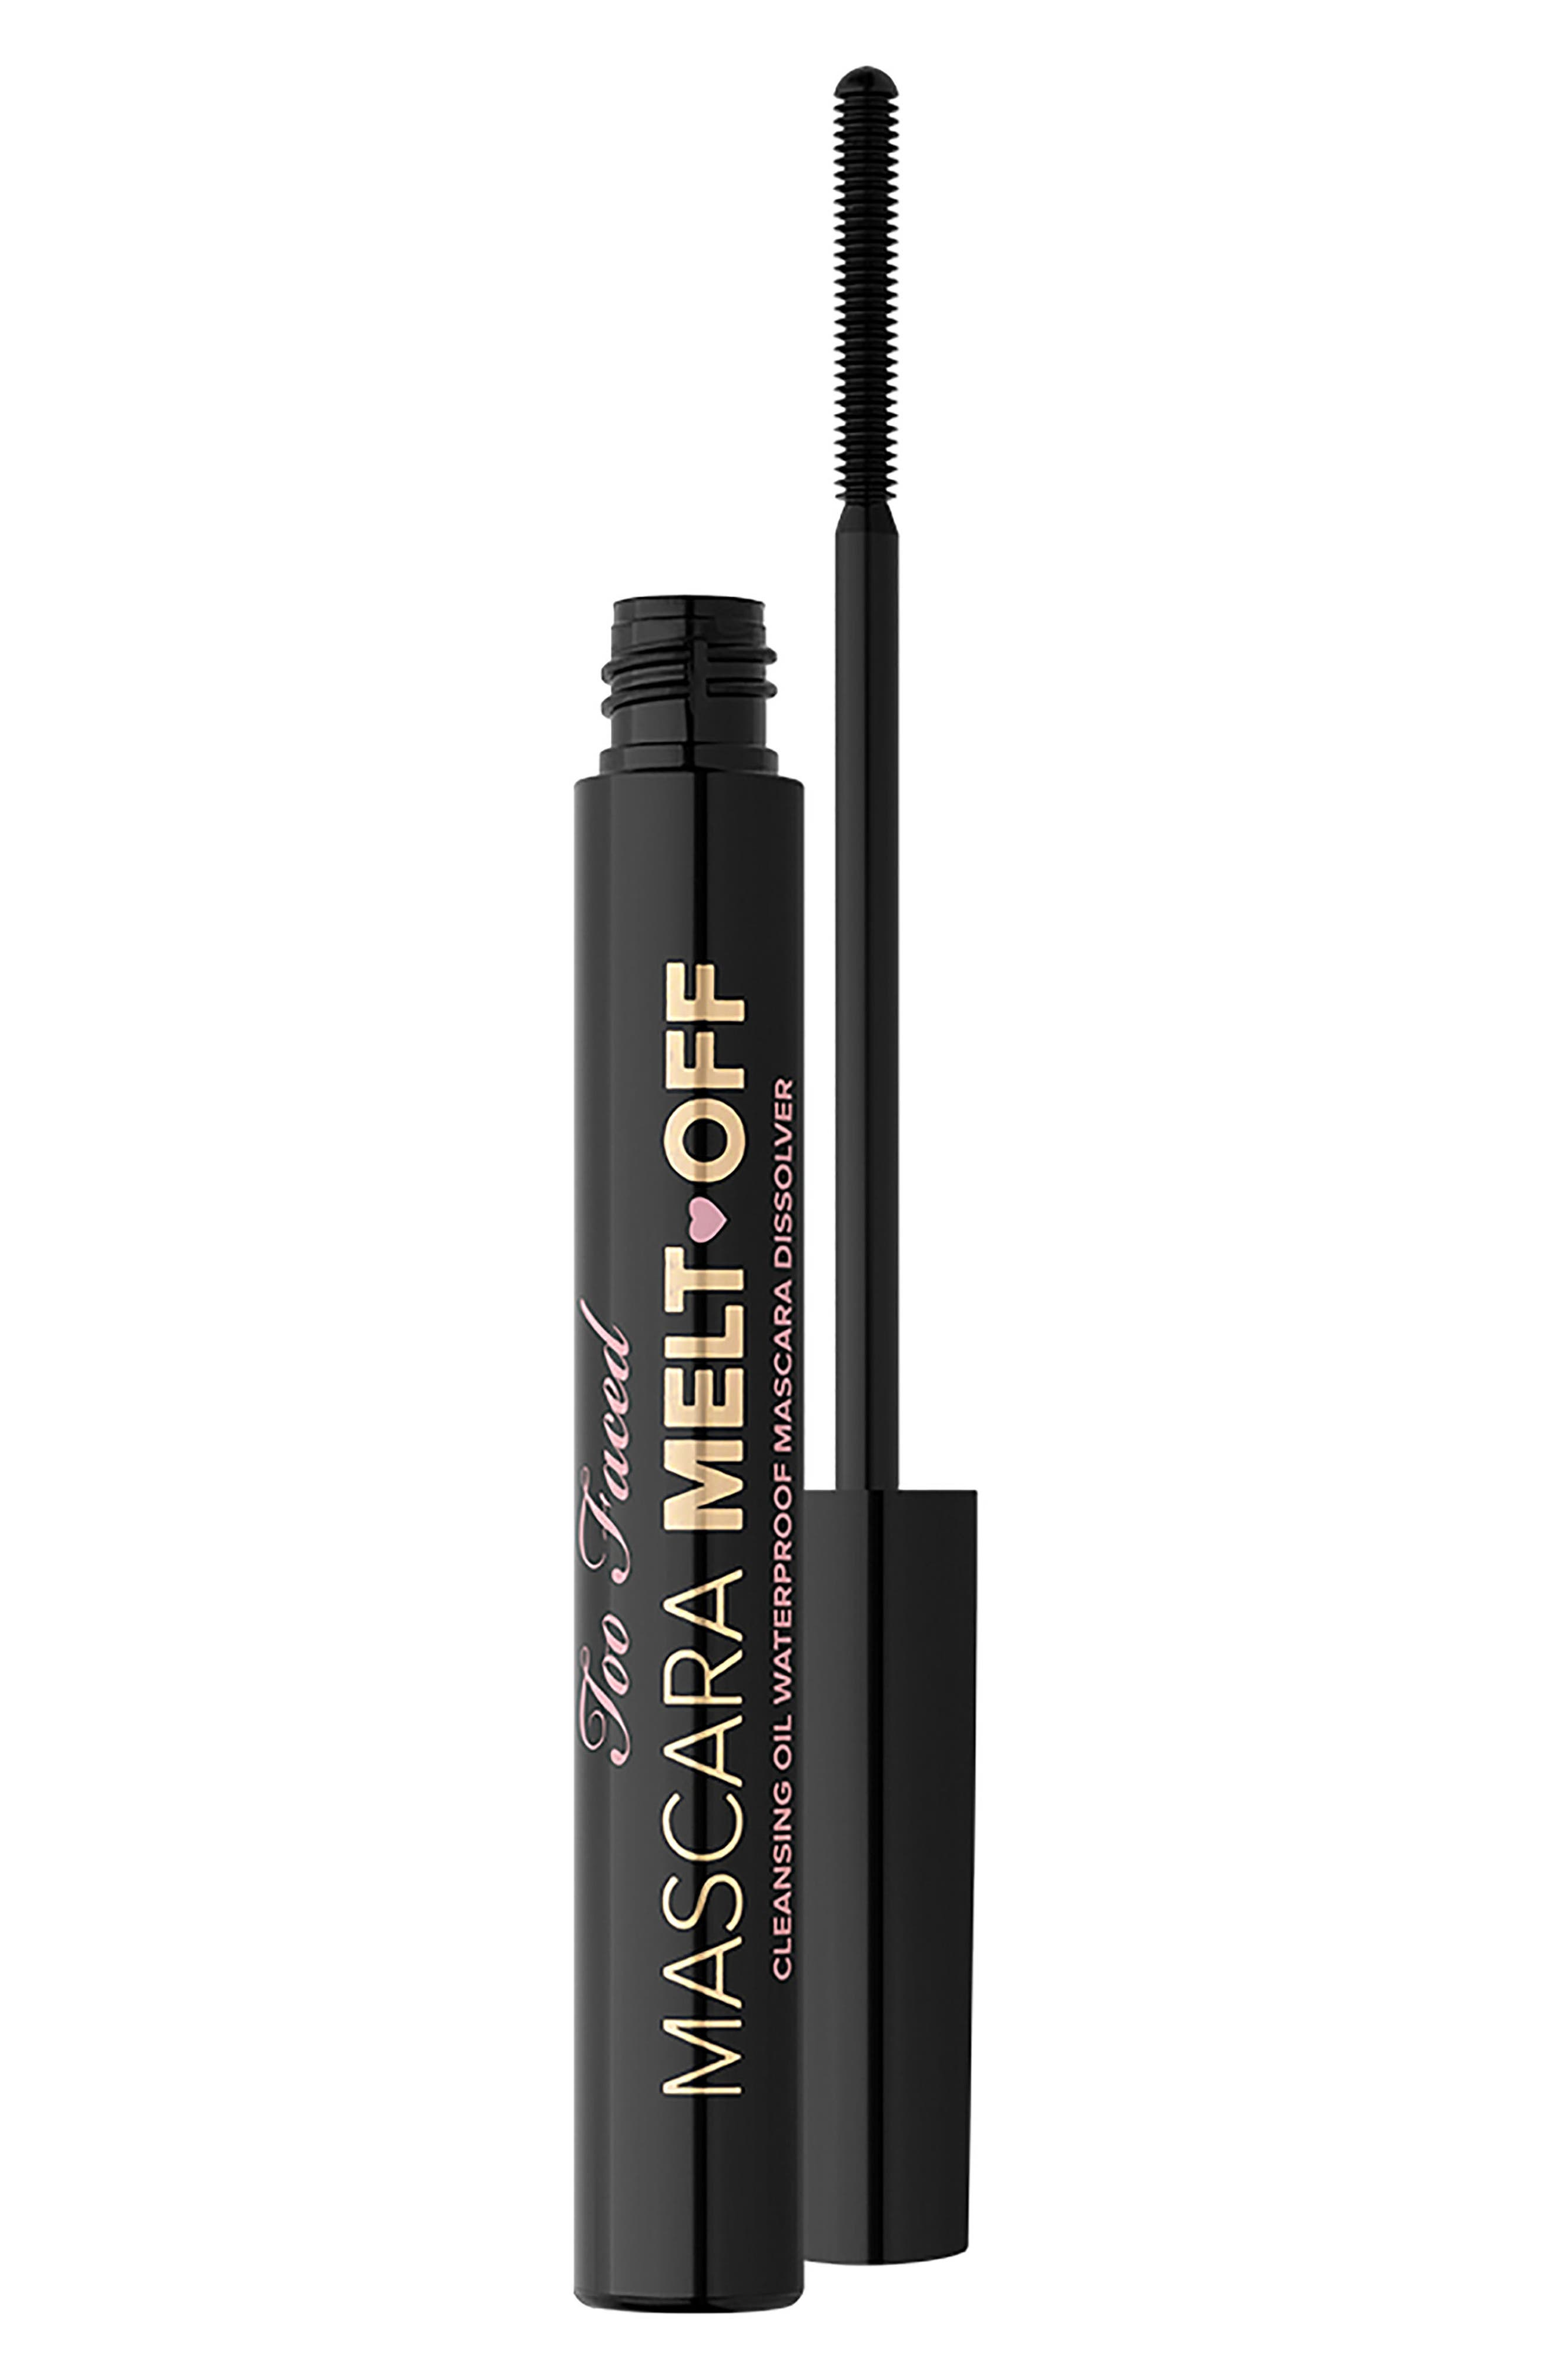 Too Faced Mascara Melt Off Cleansing Oil